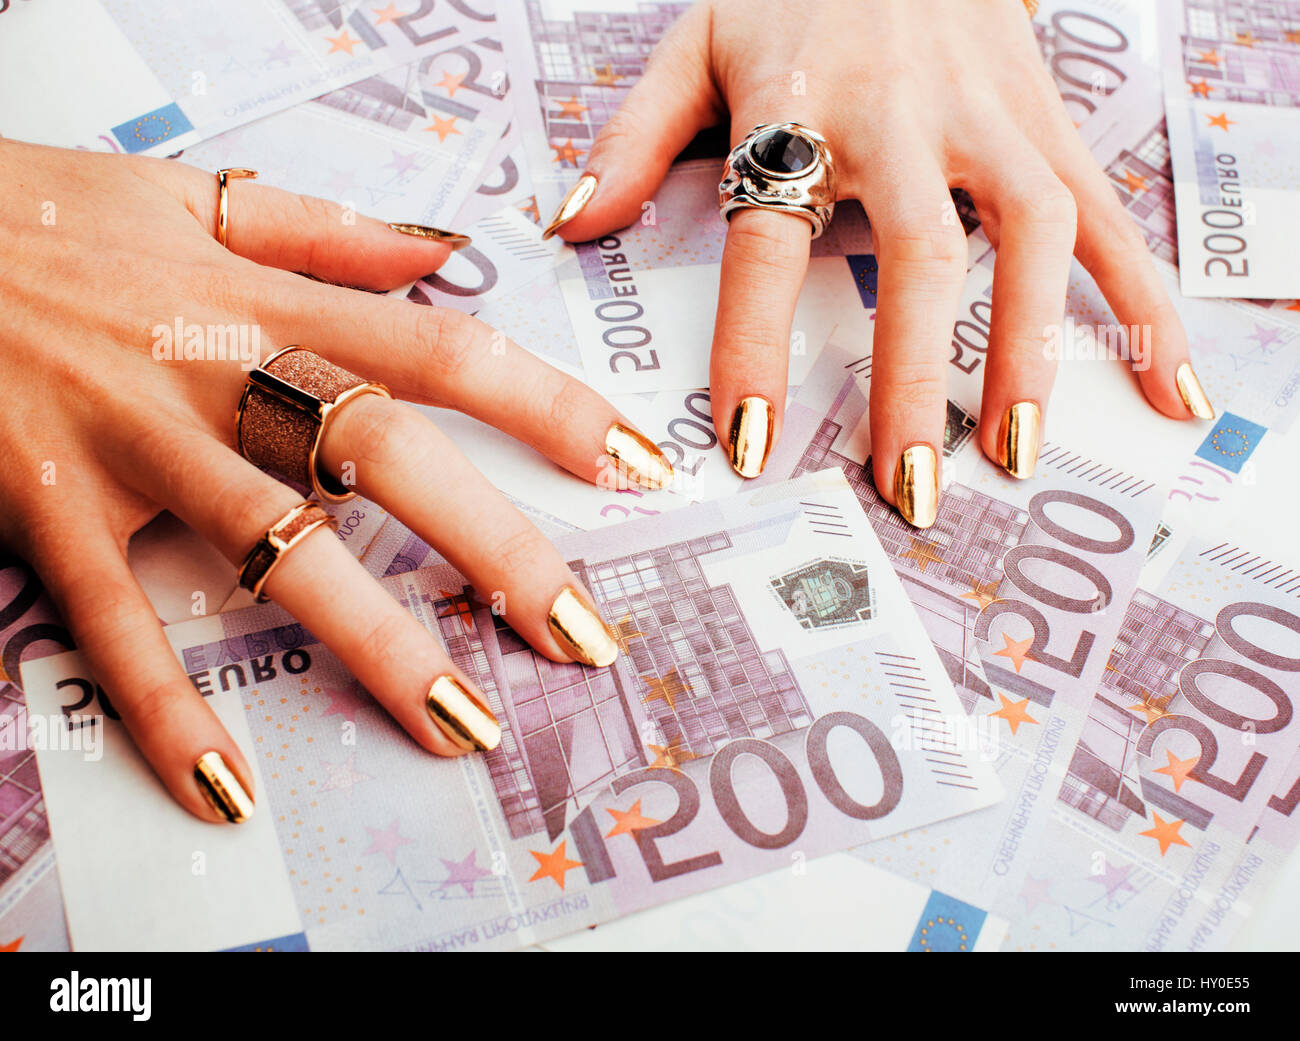 hands of rich woman with golden manicure and many jewelry rings ...